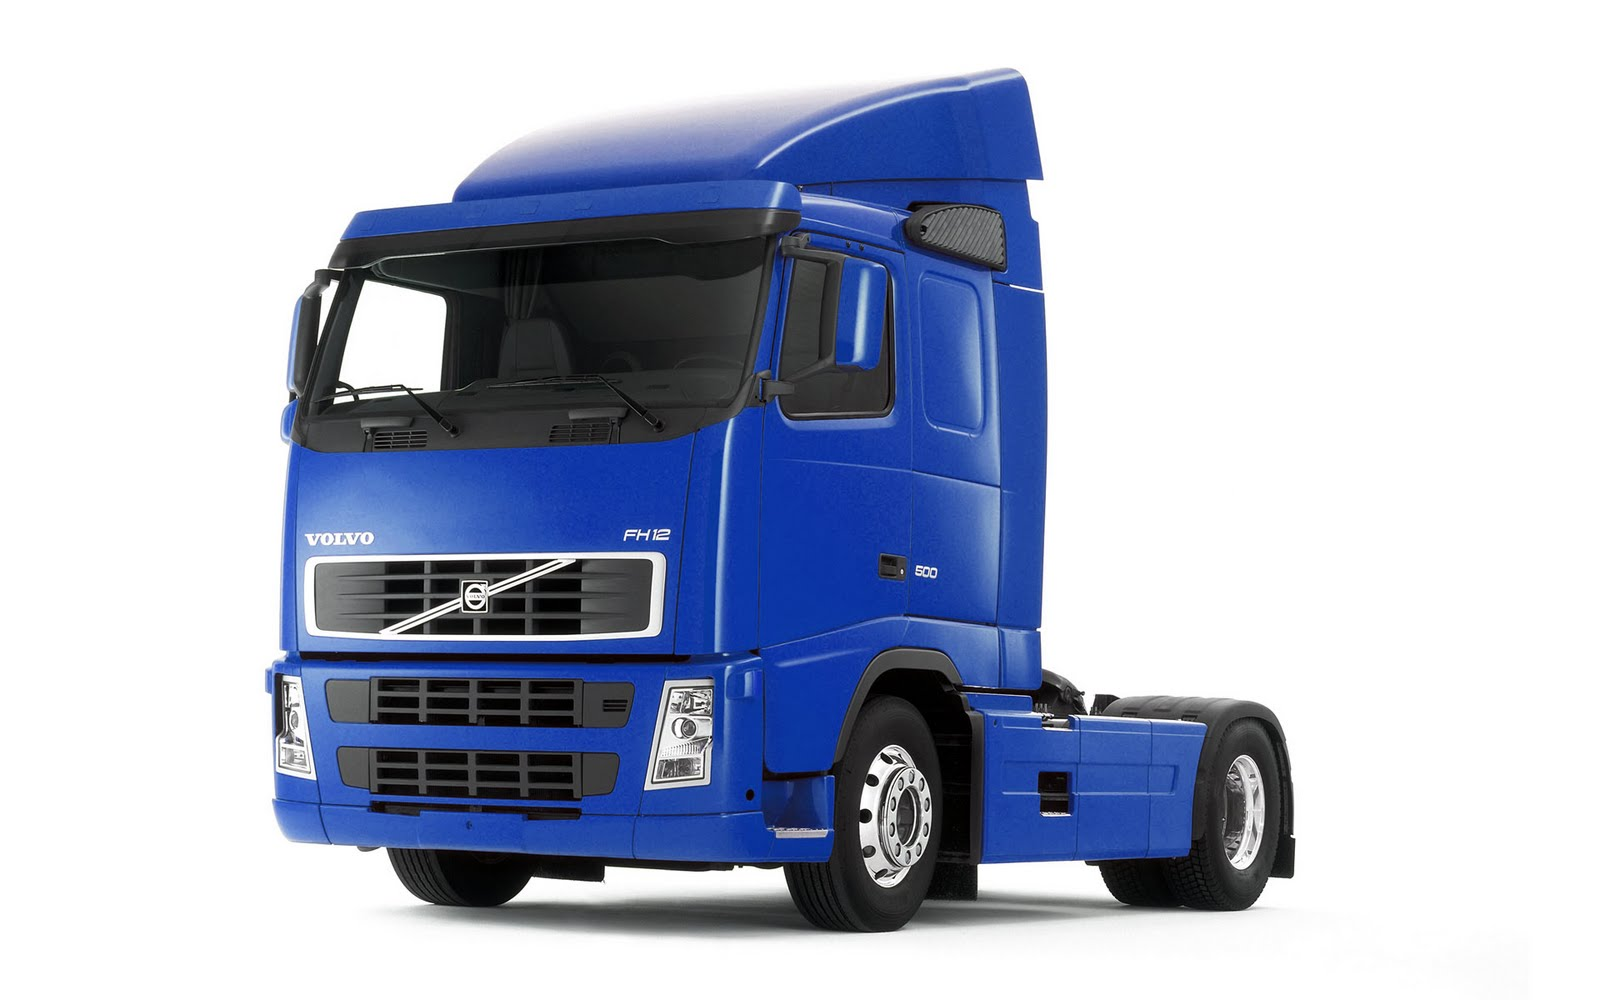 volvo truck wallpapers high resolution. high quality volvo truck picture wallpapers resolution